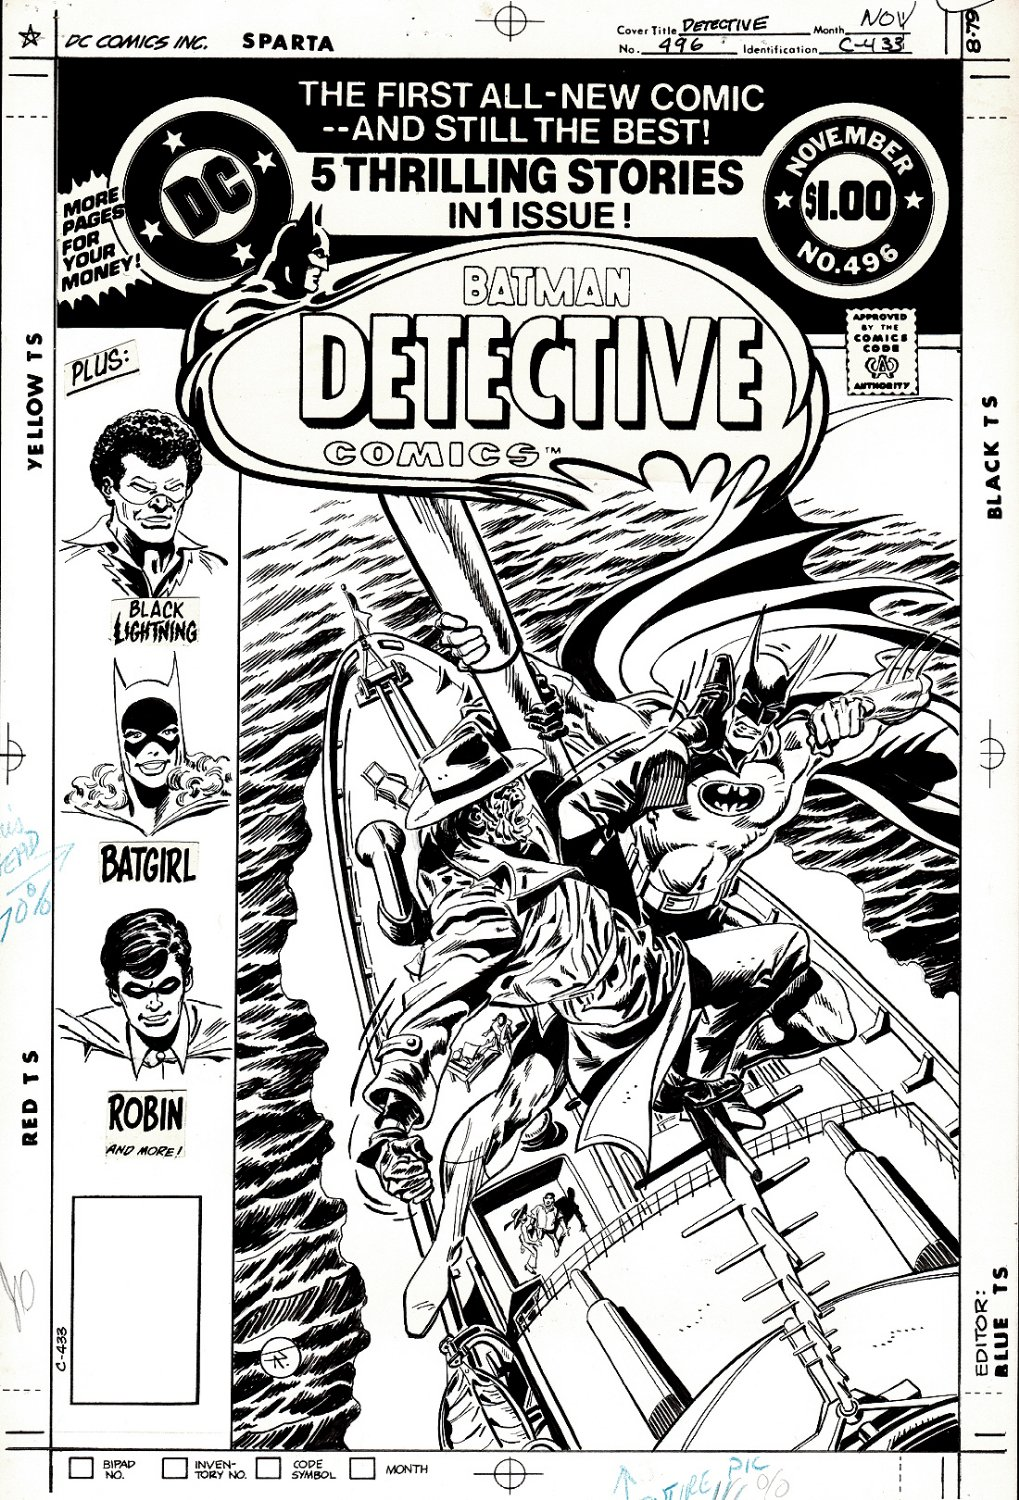 Detective Comics #496 Cover (BATMAN BATTLES ORIGINAL 1940 (Detective Comics #40) CLAYFACE, WHO DIES IN THIS ISSUE!) 1980